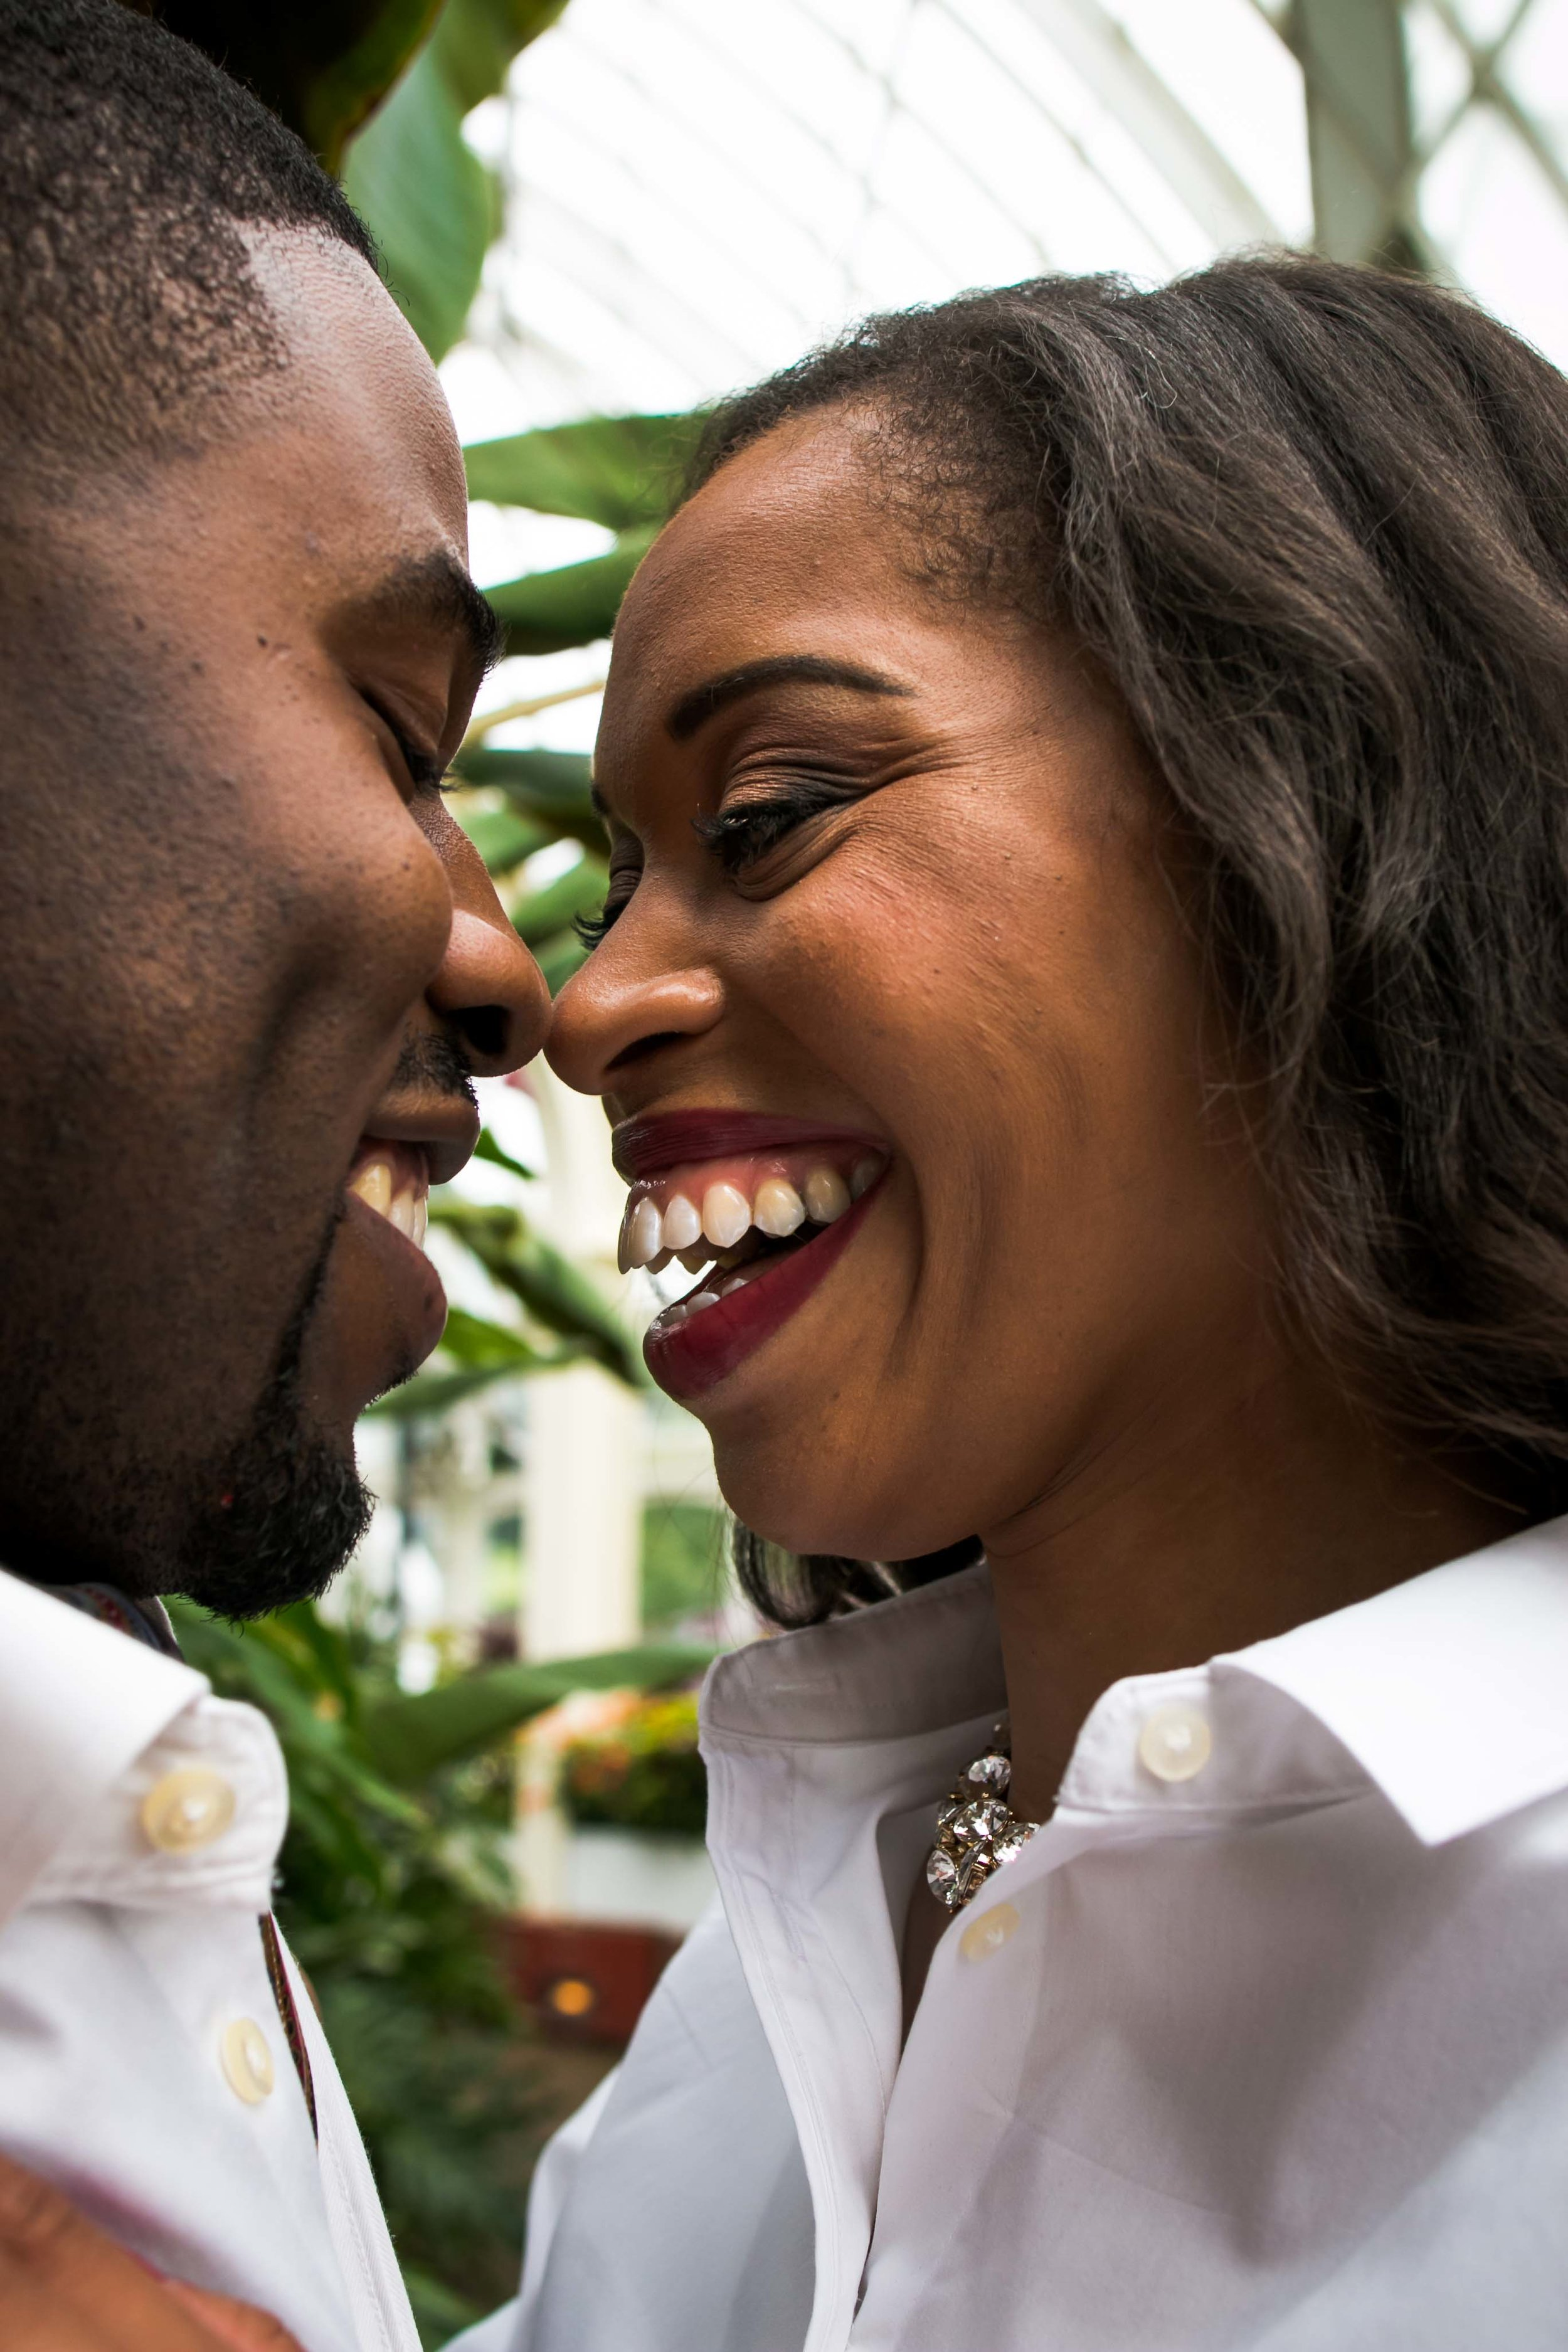 Brittany & Enyinna Engagement_092318_Low Res-92.jpg